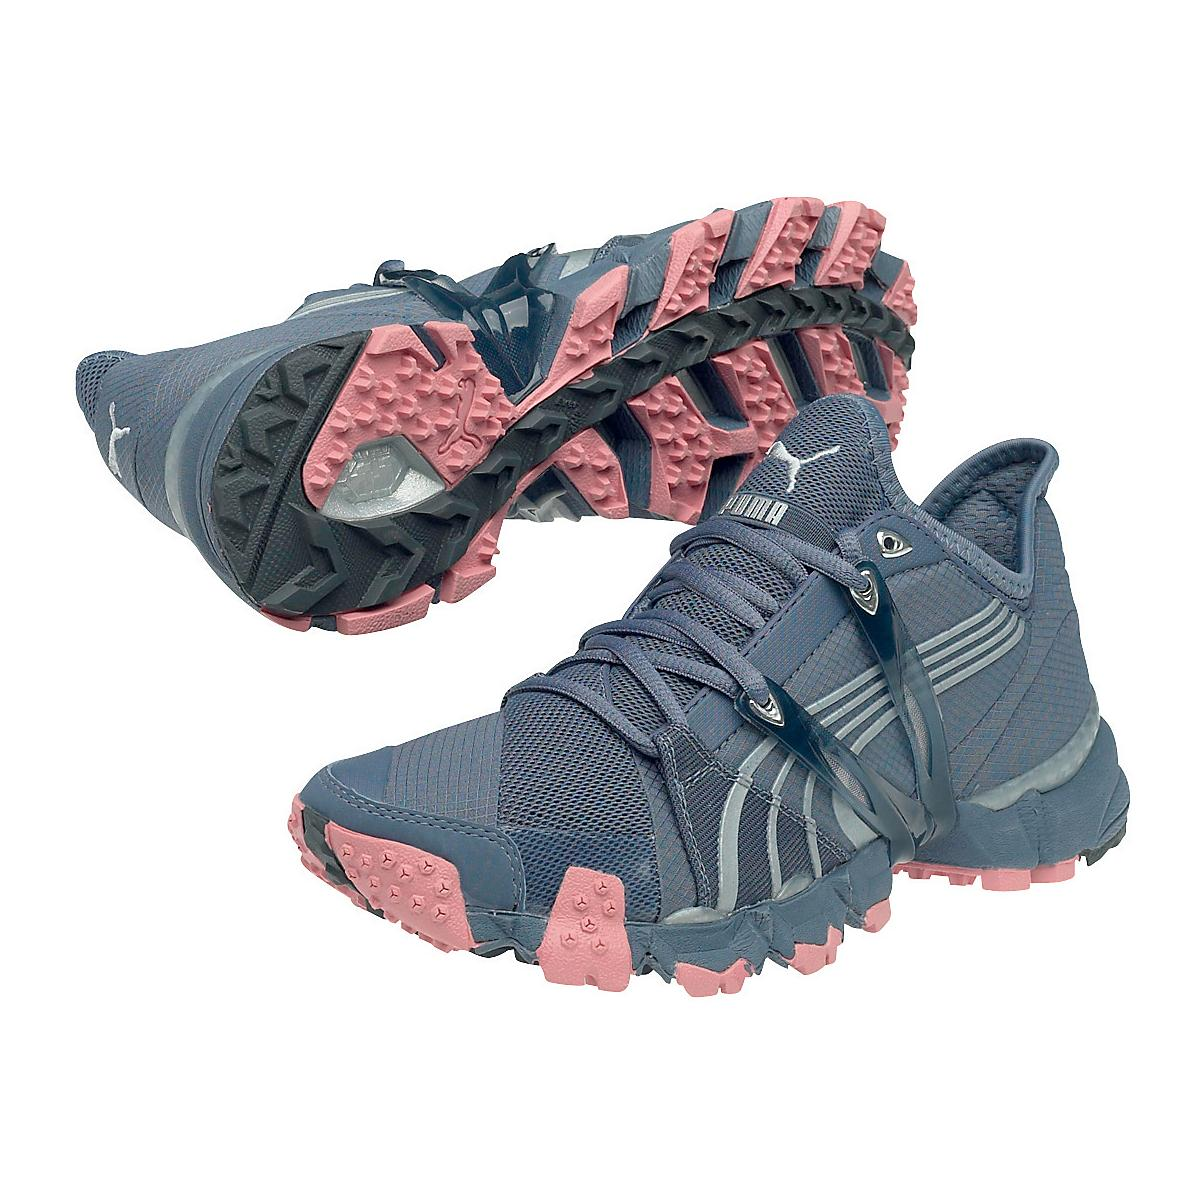 Womens PUMA Complete Trailfox III Trail Running Shoe at ...